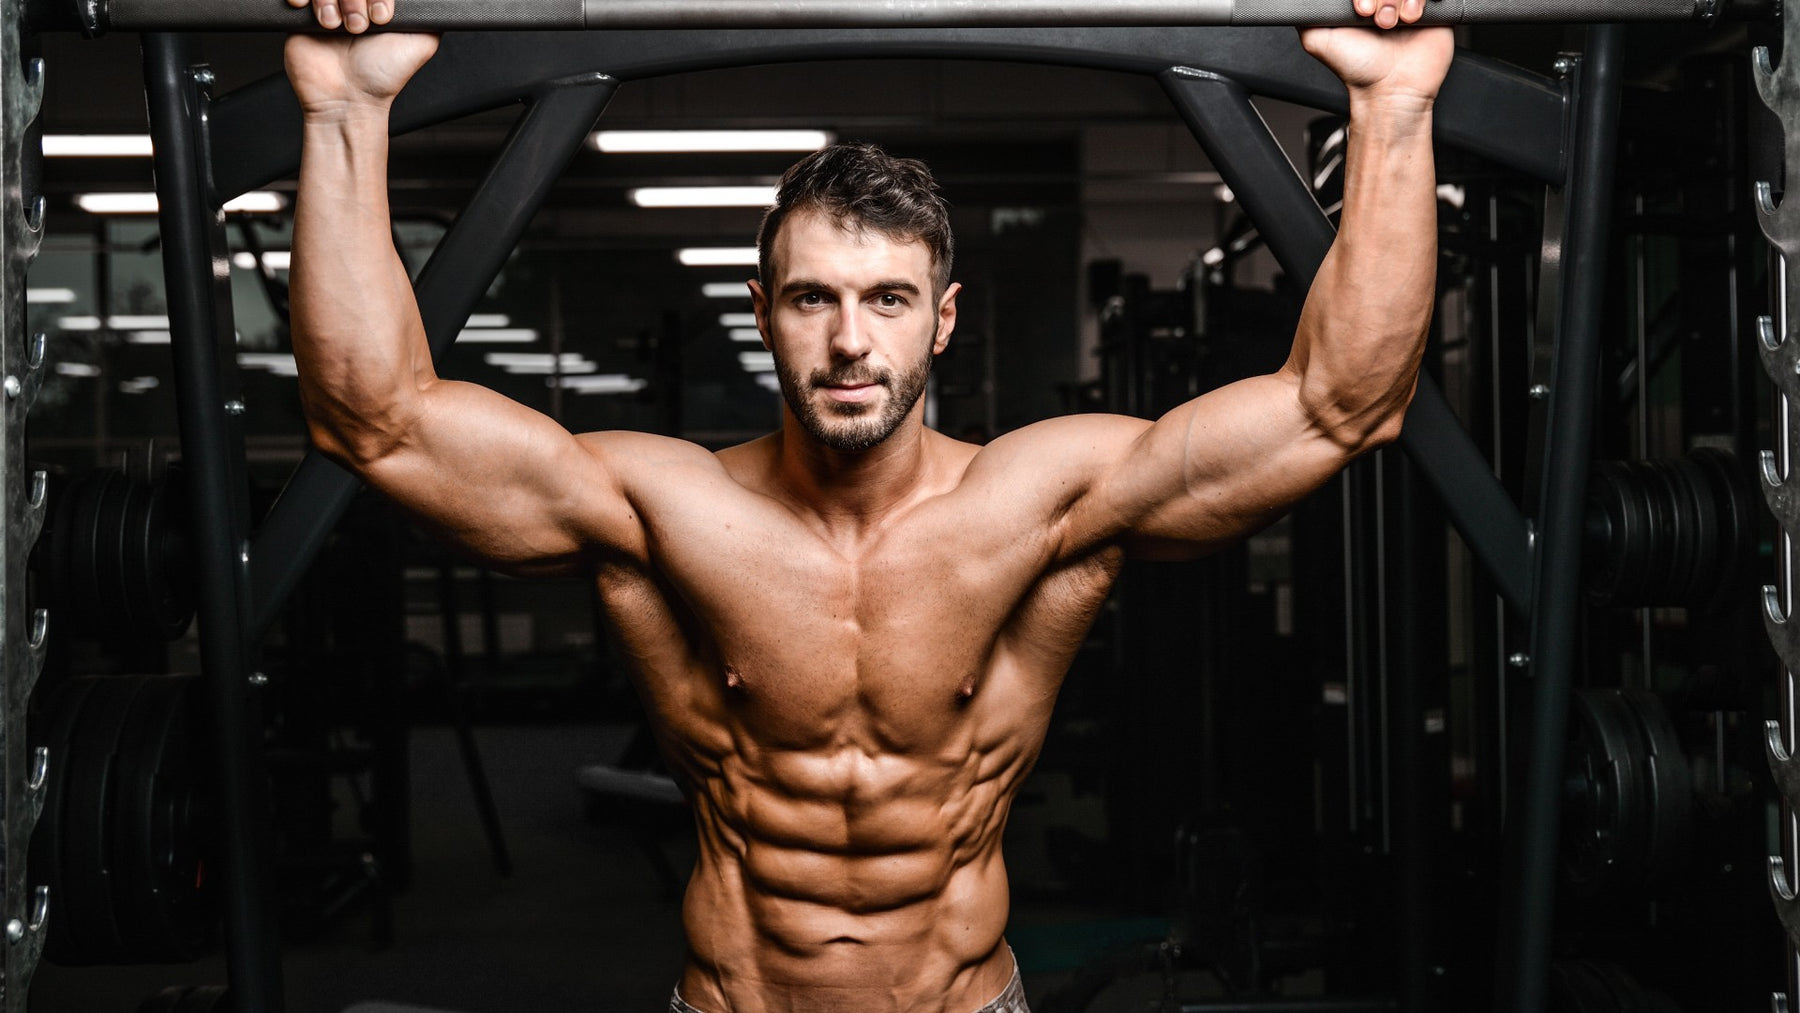 Top 7 Common Bodybuilding Mistakes Made by Beginners